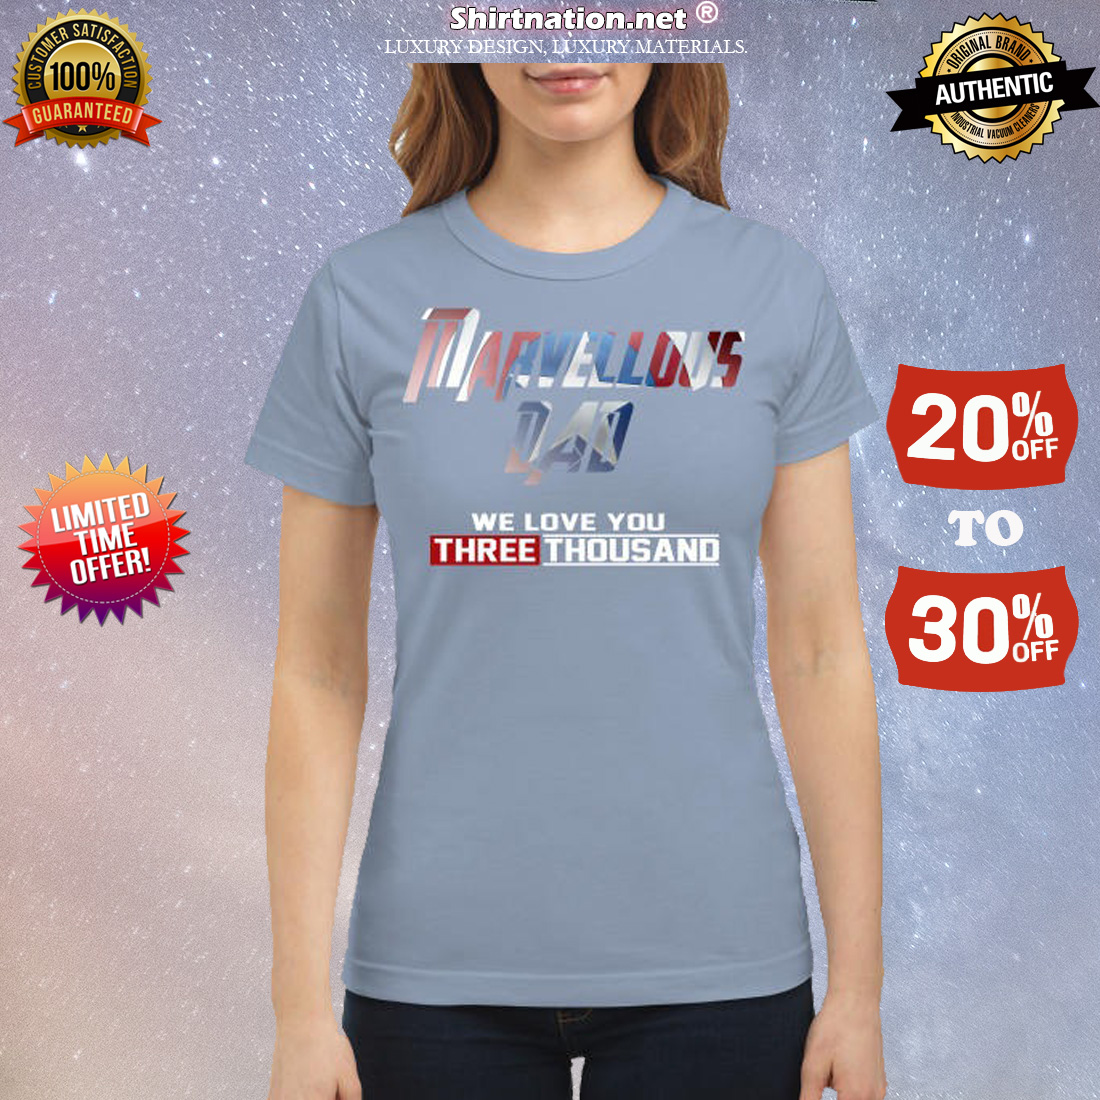 Marvellous Dad we love you three thousand classic shirt